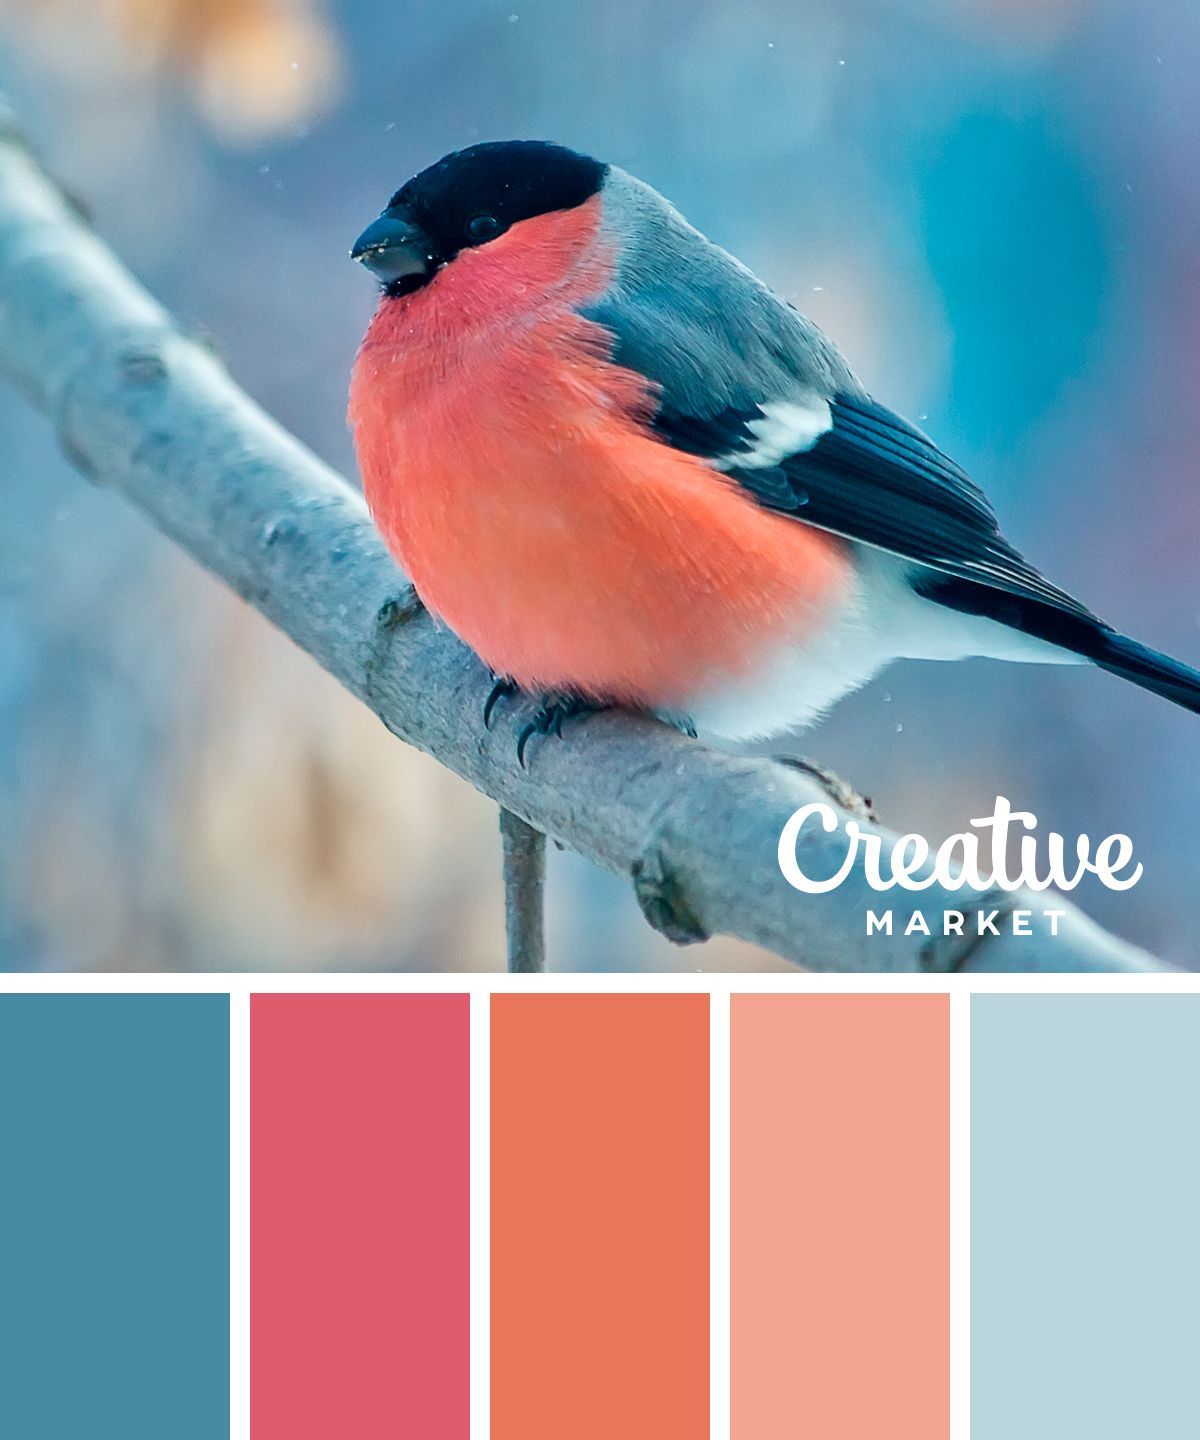 On the Creative Market Blog - 15 Downloadable Color Palettes For Winter #fallcolors